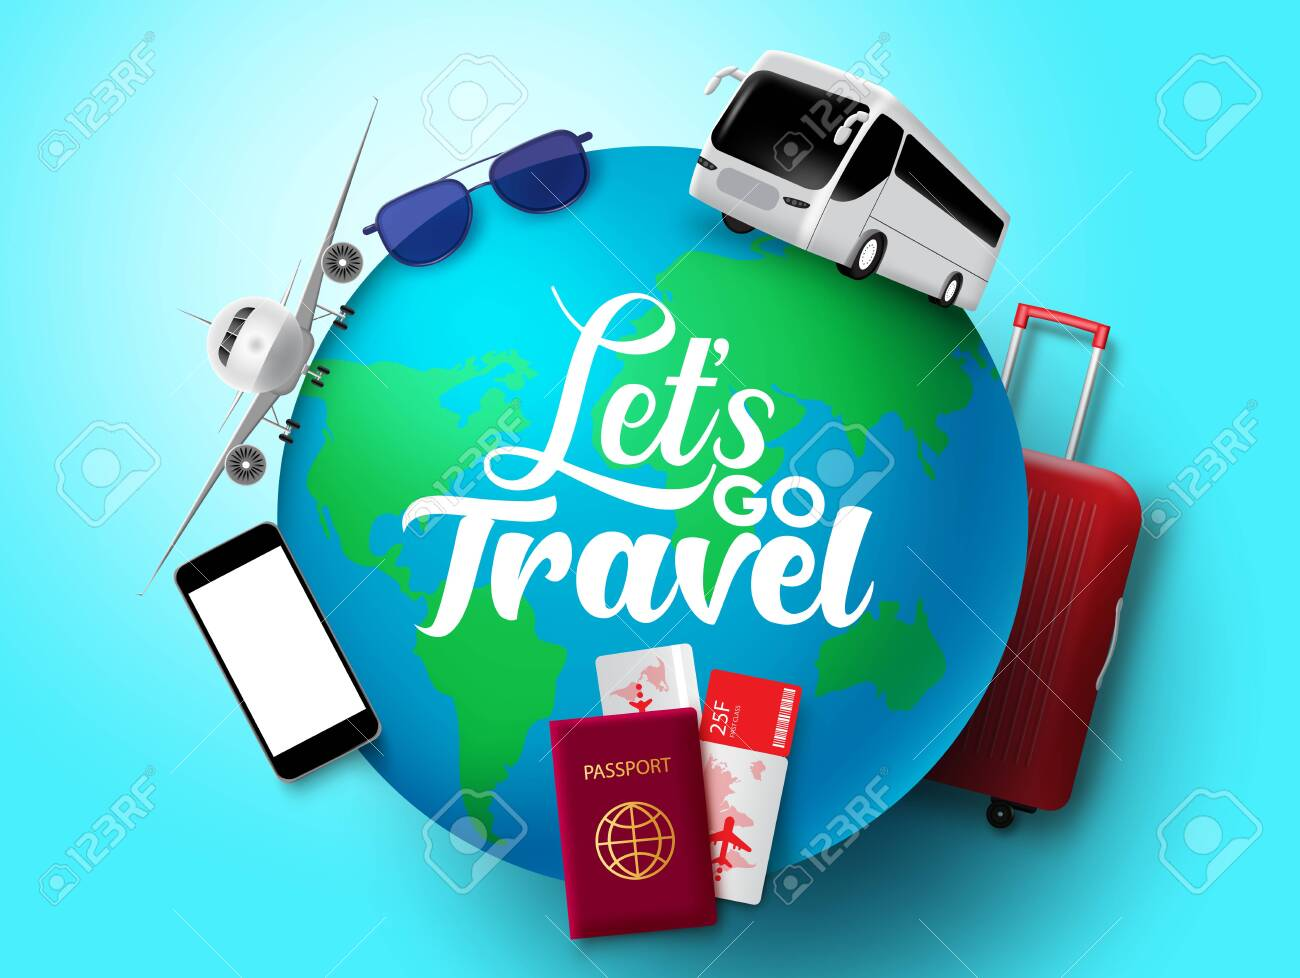 Let's go travel vector concept design. Let's go travel text in globe with transportation and tour element like bus, airplane, passport, ticket, luggage and sunglasses in blue background. Vector illustration. - 146862295